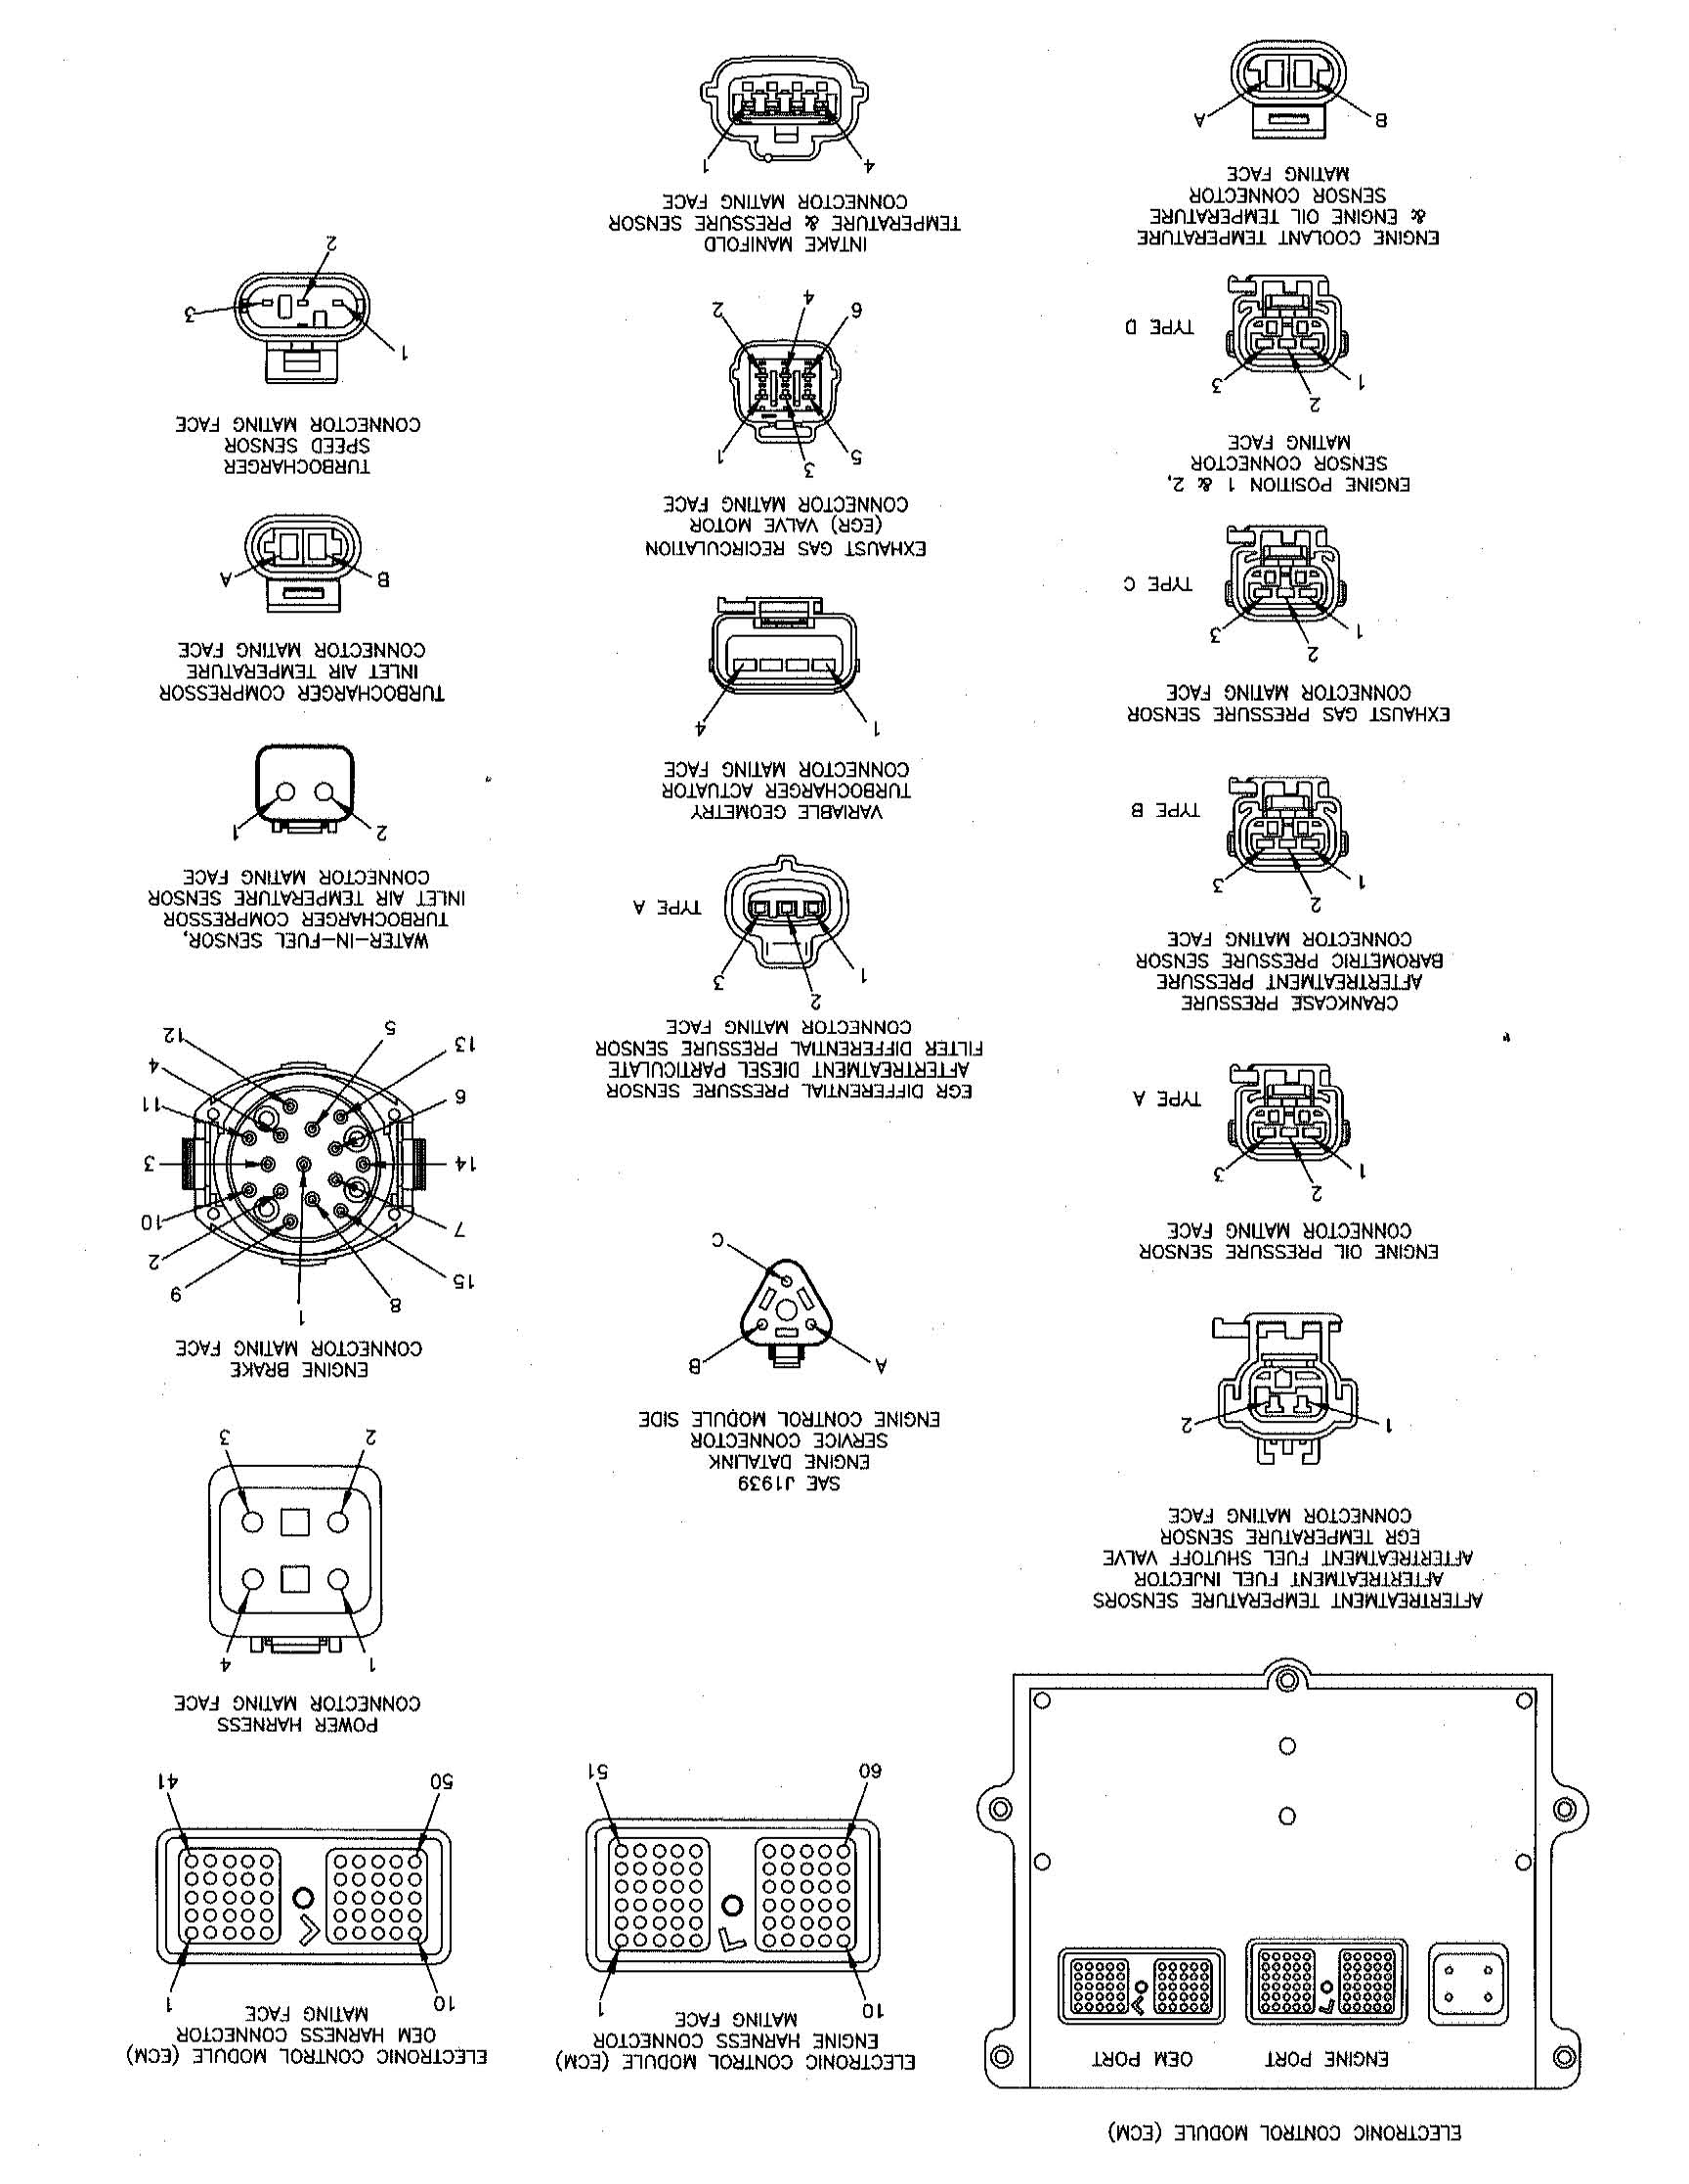 i need ecm pinout for ism cummins engine i do not care 6 connector wiring diagram 6 pin deutsch connector wiring diagram